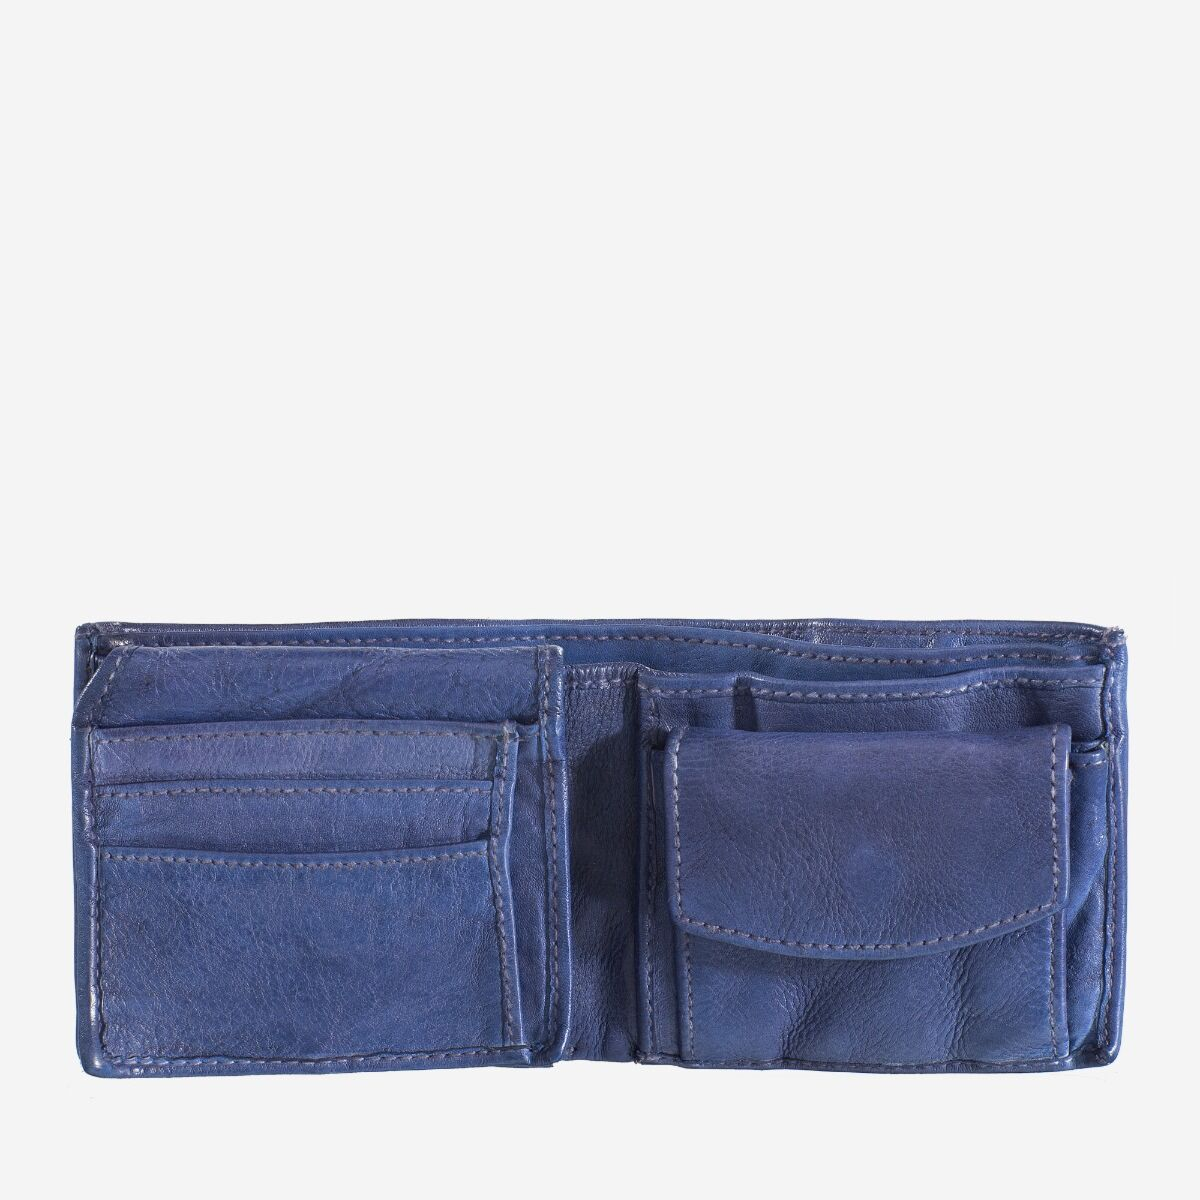 Mans hand-made soft natural high quality leather wallet - Indigo Blue